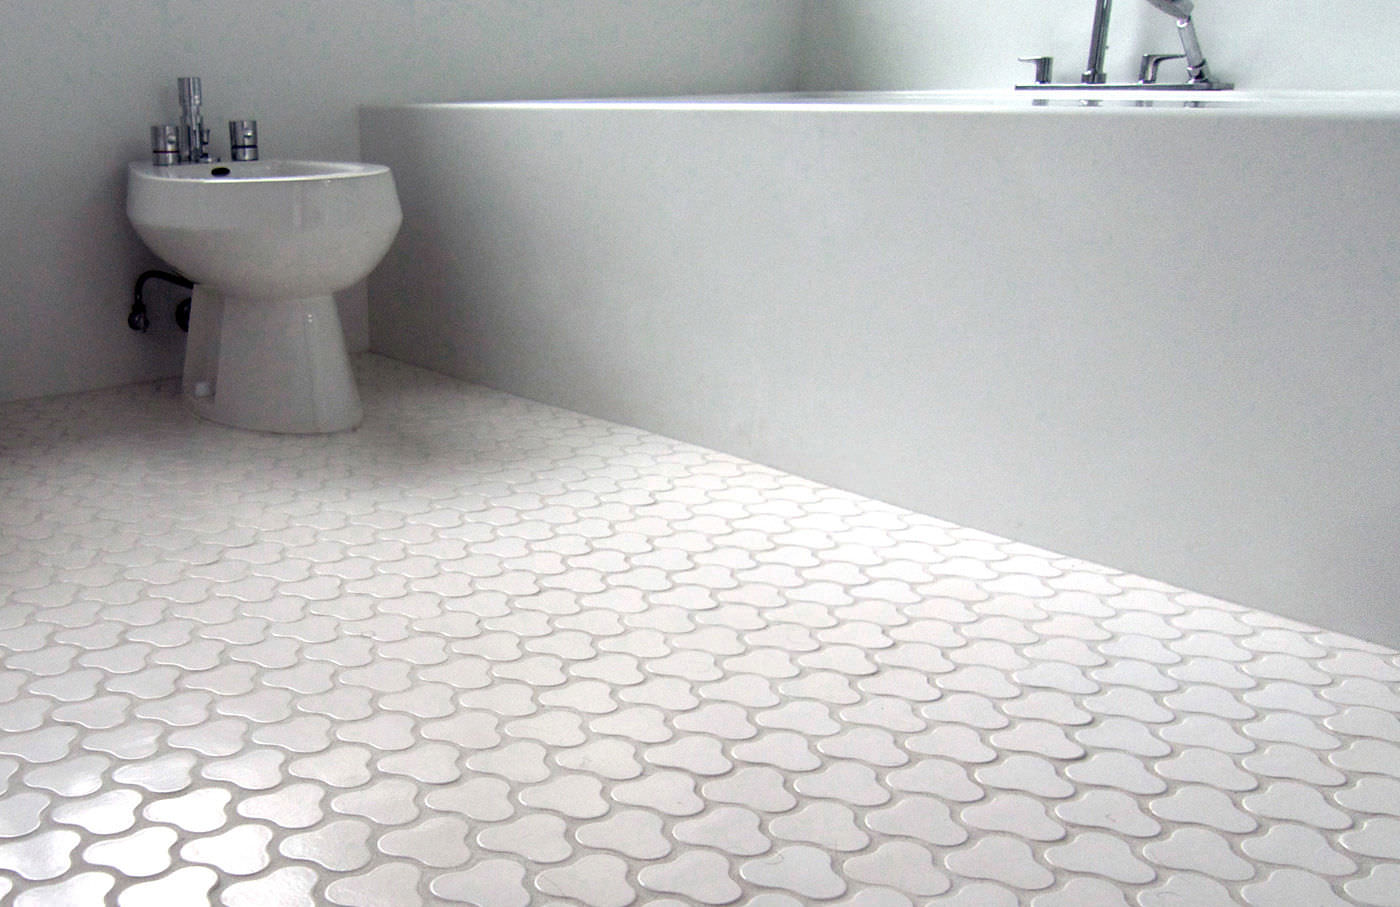 Indoor tile / bathroom / floor / ceramic - BOM - Daniel Ogassian